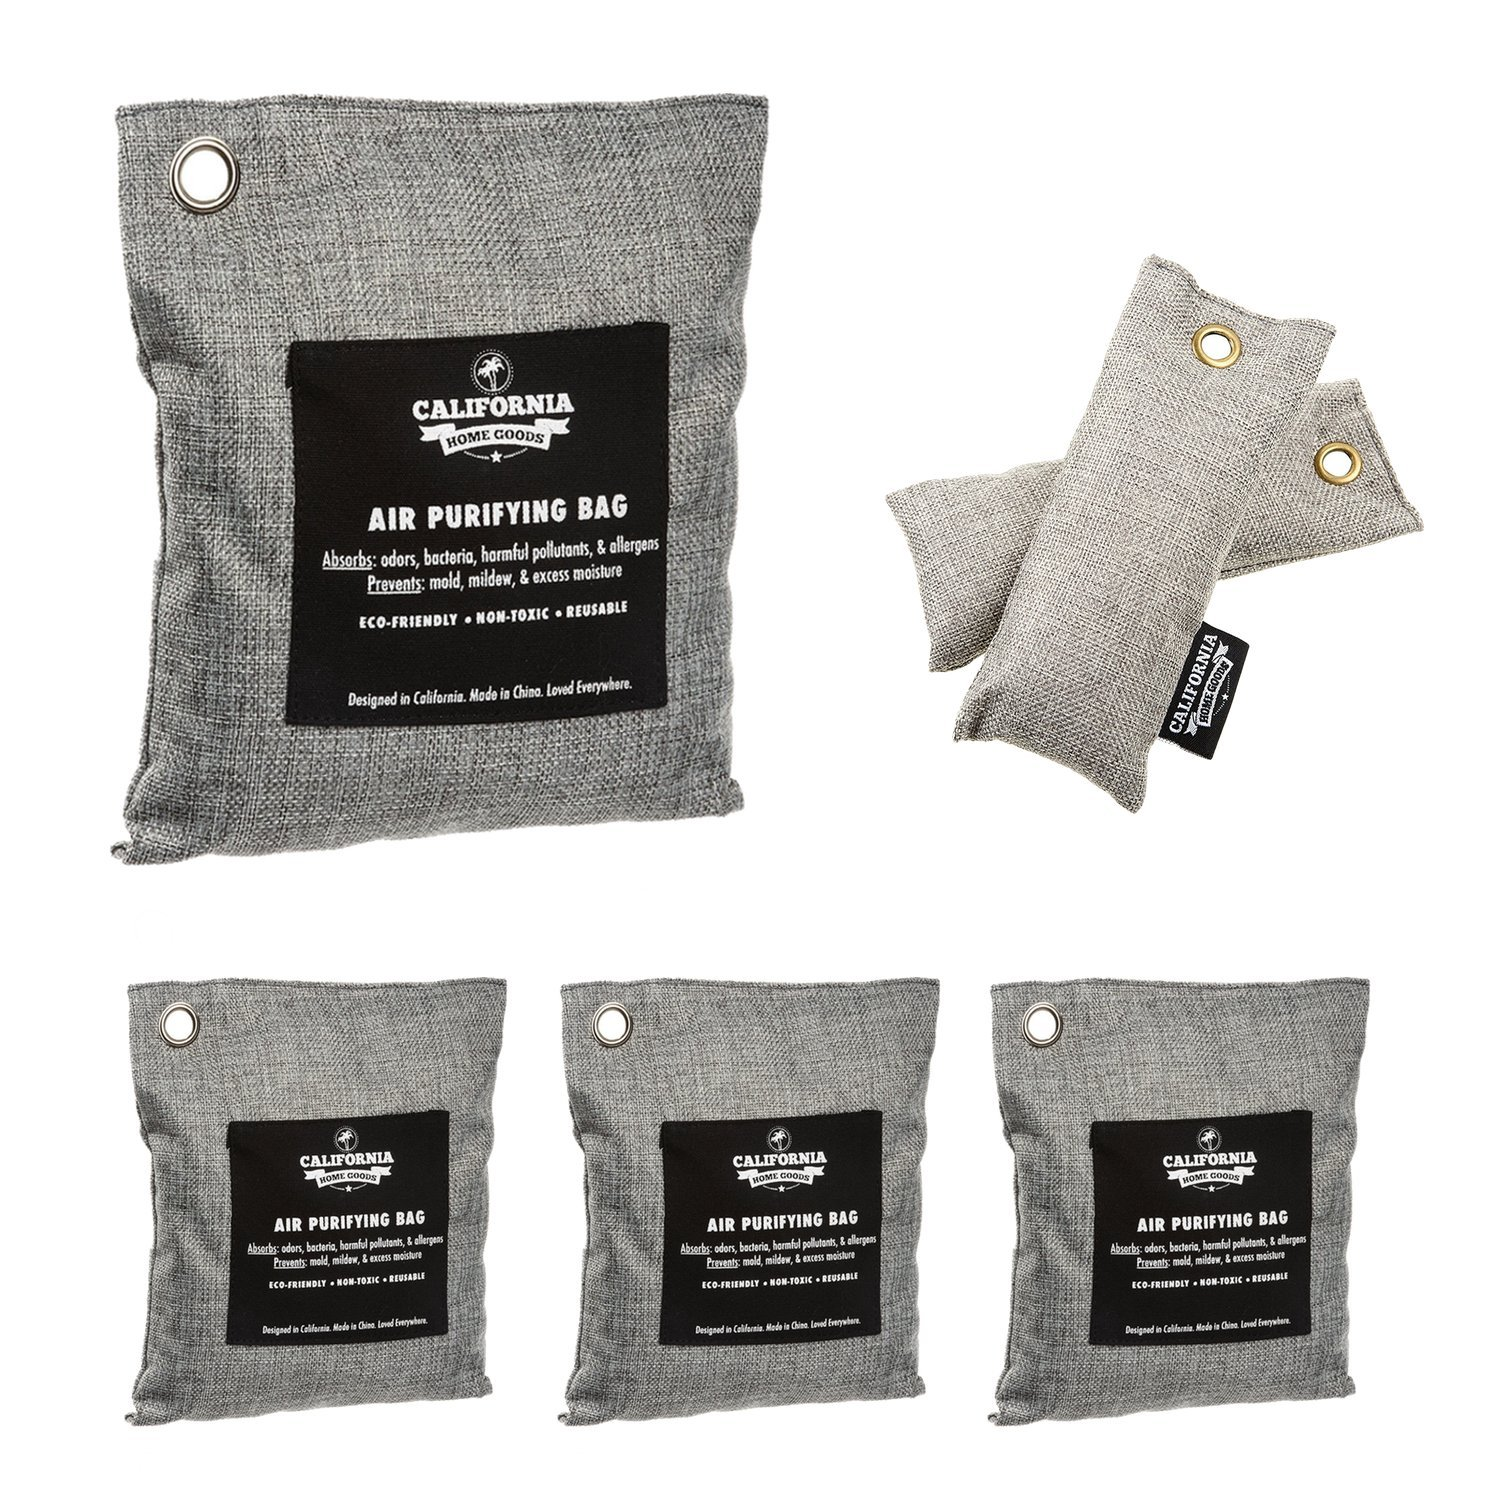 6 Pack - Activated Charcoal Deodorizer Odor Neutralizer Bags Complete Pack (1x 500g, 3X 200g & 2X 50g), Car Freshener Bags, 100% Natural Non-Toxic Carbon Activated Bamboo Charcoal Air Purifying Bag by California Home Goods